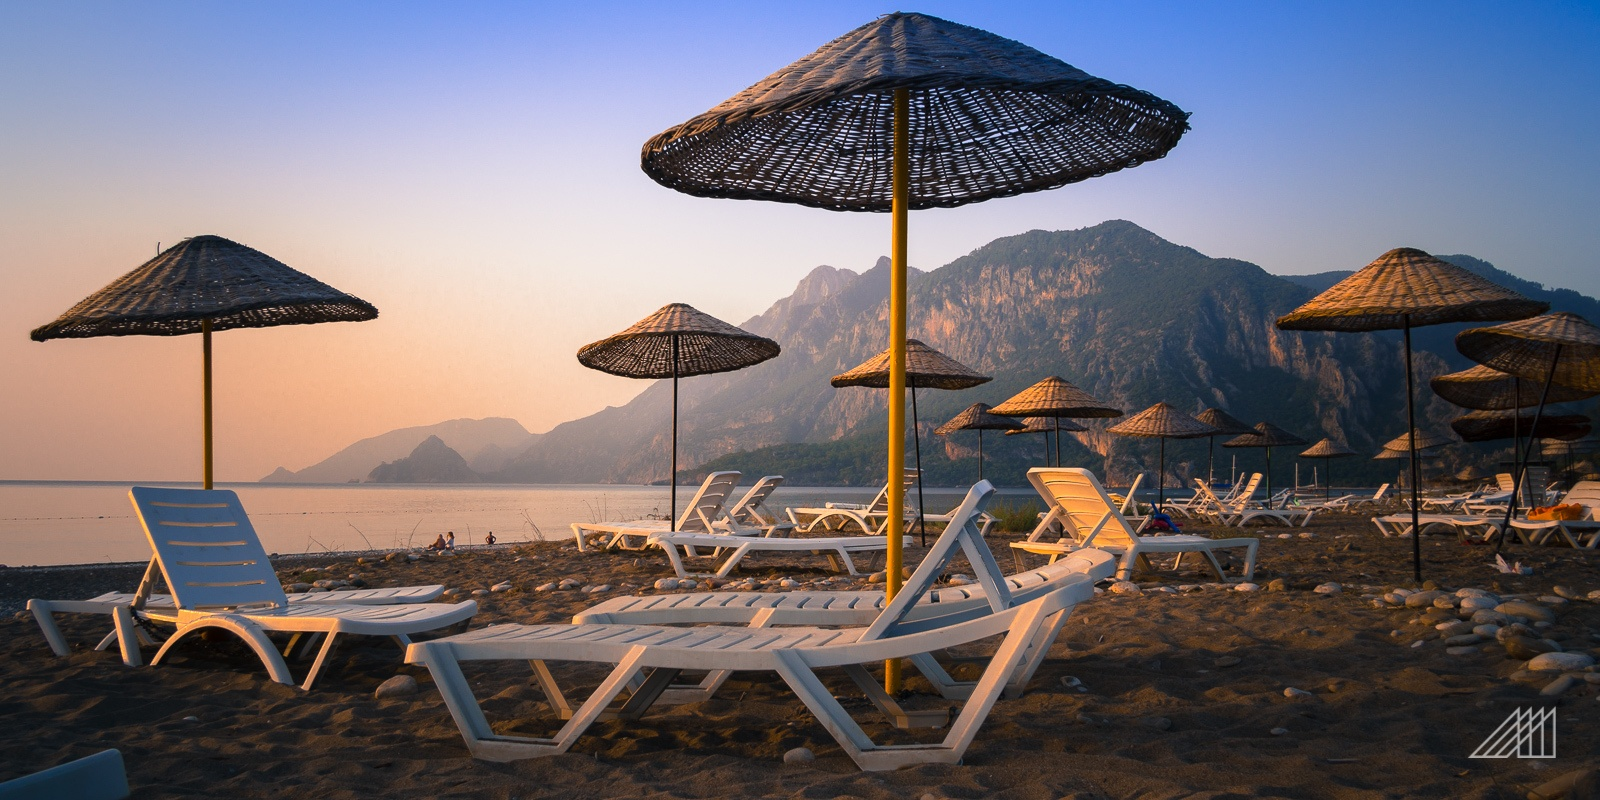 sunrise olympos beach turkey